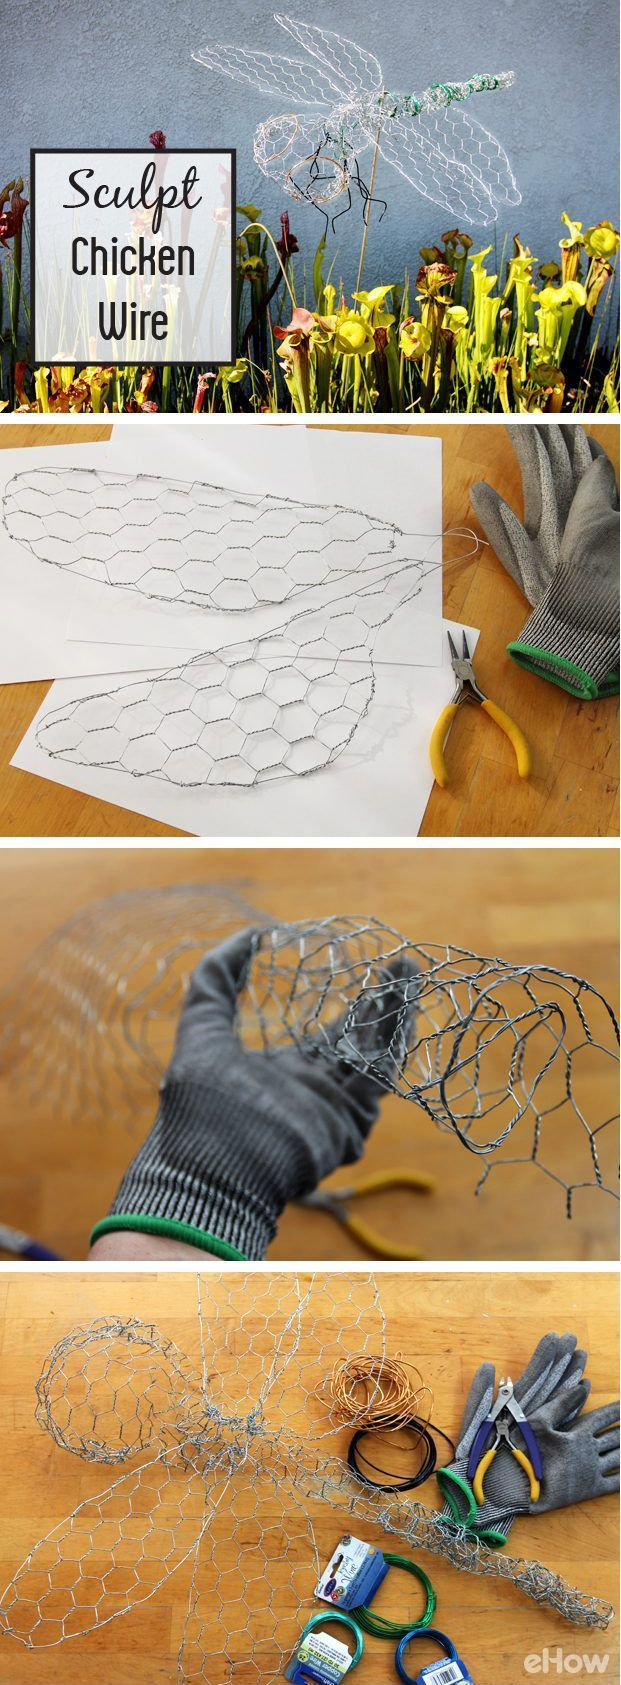 "Sculpting chicken wire is a great way to add fun decor to your yard! Make a dragonfly sculpture out of chicken wire for a decorative garden accent. A dragonfly is relatively easy and inexpensive to make, and it can be ""accessorized"" in any color palette you choose. Install it by a pond, pool or aquatic garden for extra charm. DIY instructions here: http://www.ehow.com/how_5635113_sculpt-chicken-wire.html?utm_source=pinterest.com&utm_medium=referral&utm_content=inline&utm_campaign=fanpage"